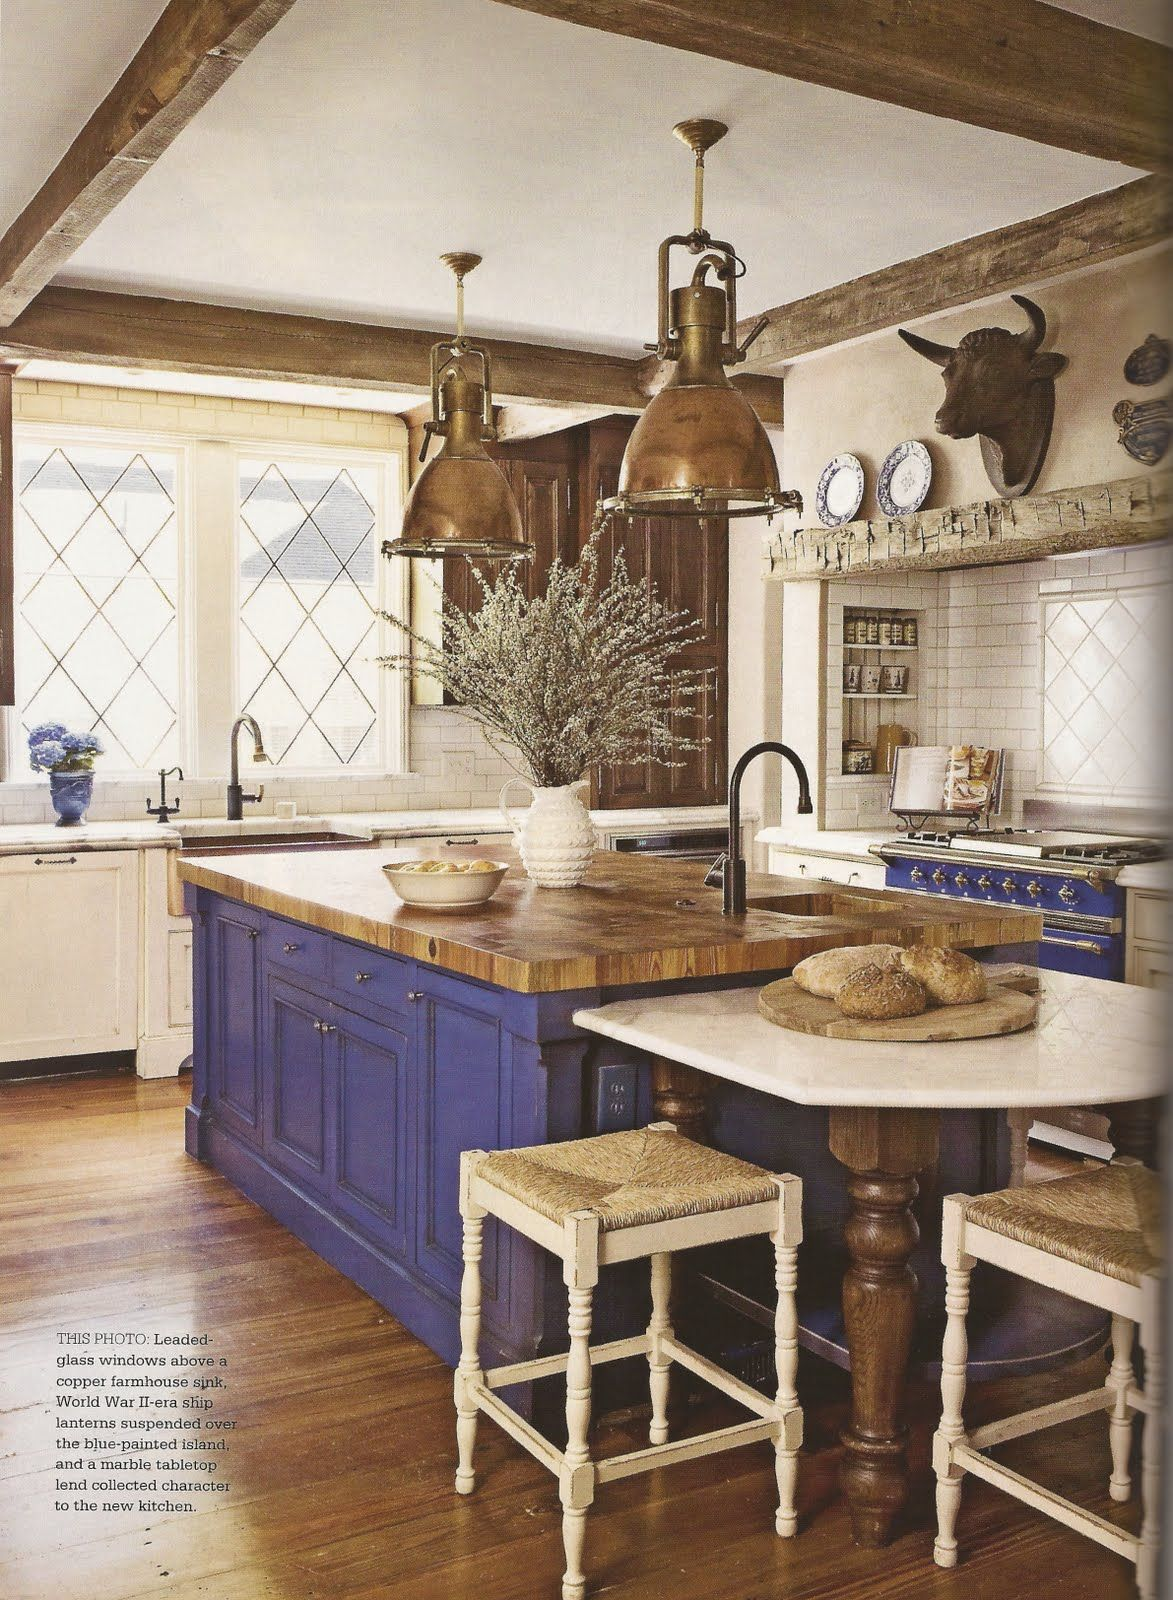 country kitchen lighting Blue island and oven in French Country kitchen This is so classic it transcends time